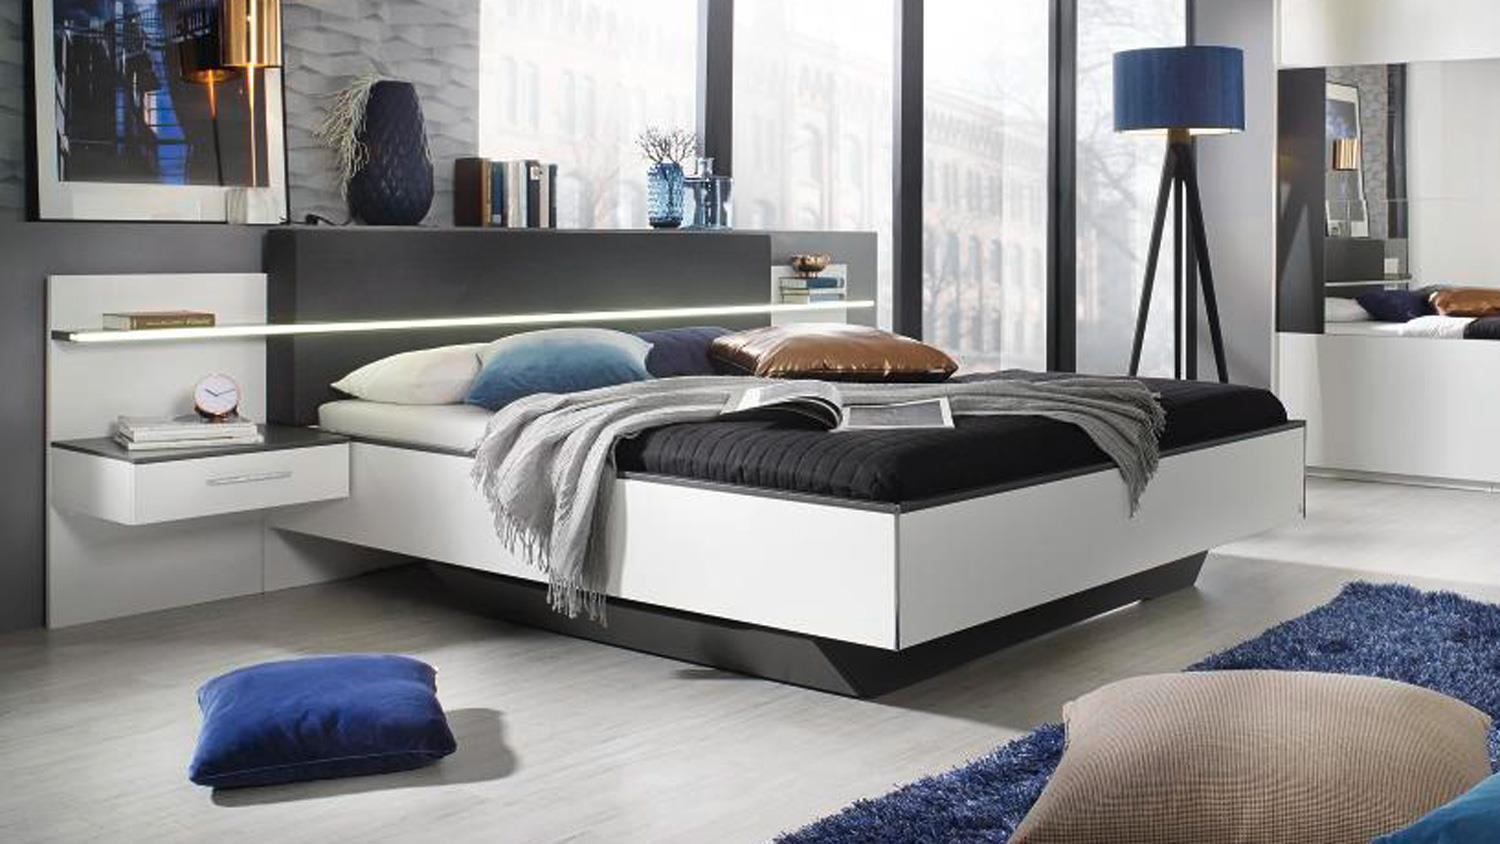 schlafzimmer set elissa bett nachttisch schrank wei graphit mit led. Black Bedroom Furniture Sets. Home Design Ideas